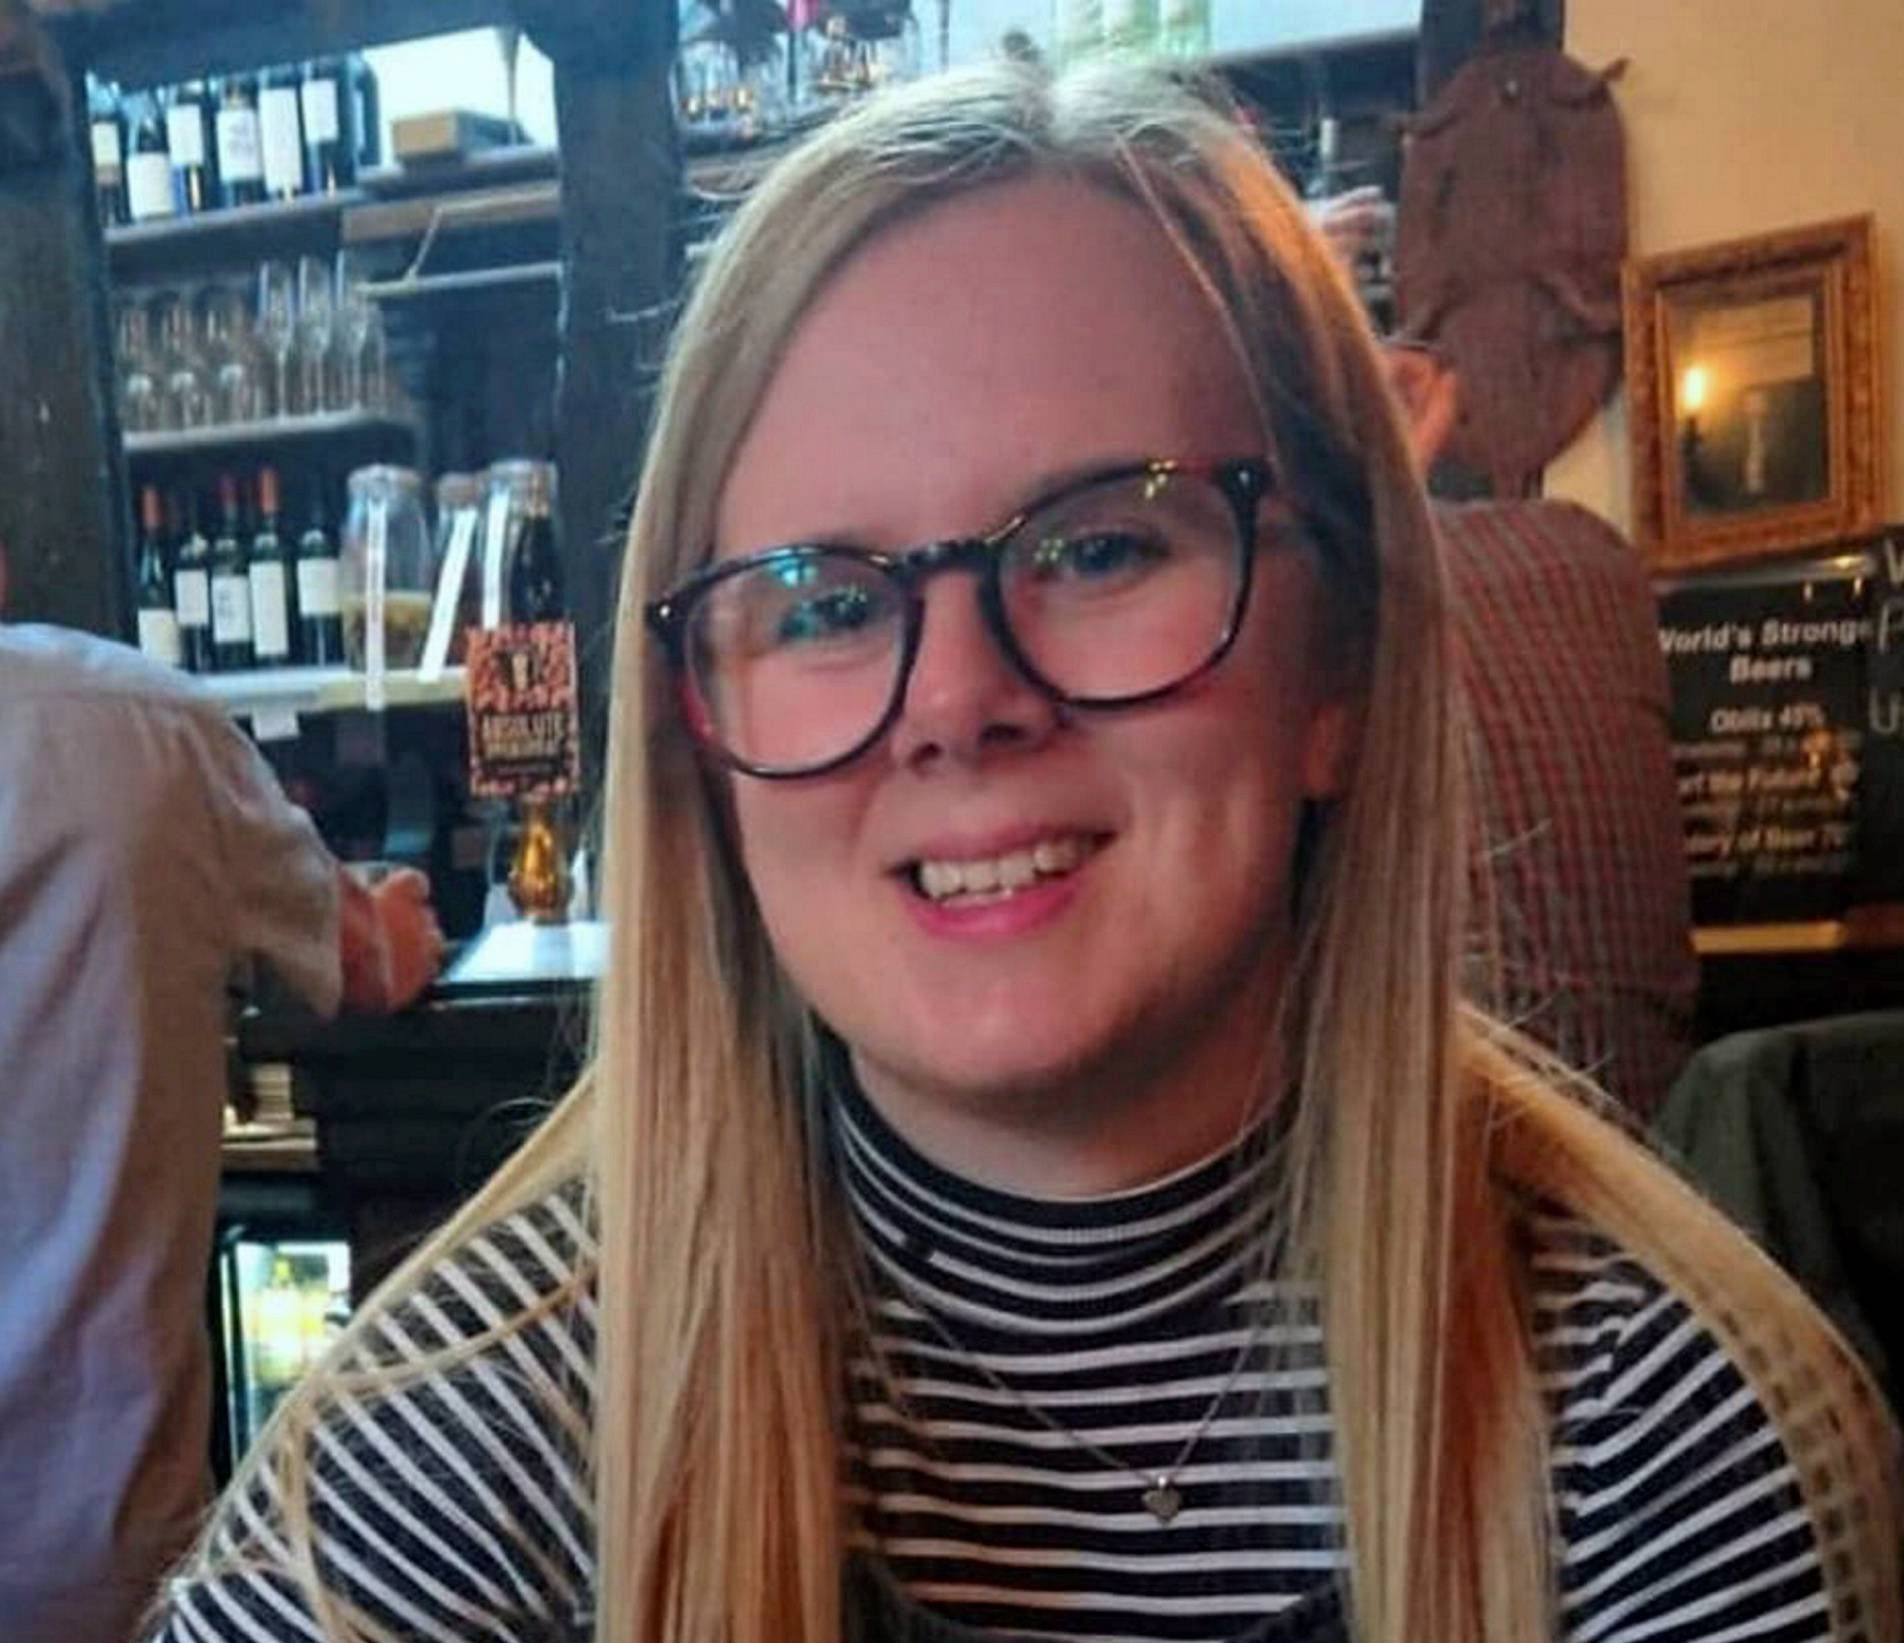 Dated: 14/03/2019 Vegetarian Rebecca Ball, 23, from Billingham, County Durham, was left 'disgusted' after a veggie wrap meal that she ordered from McDonald's contained chicken. See story North News